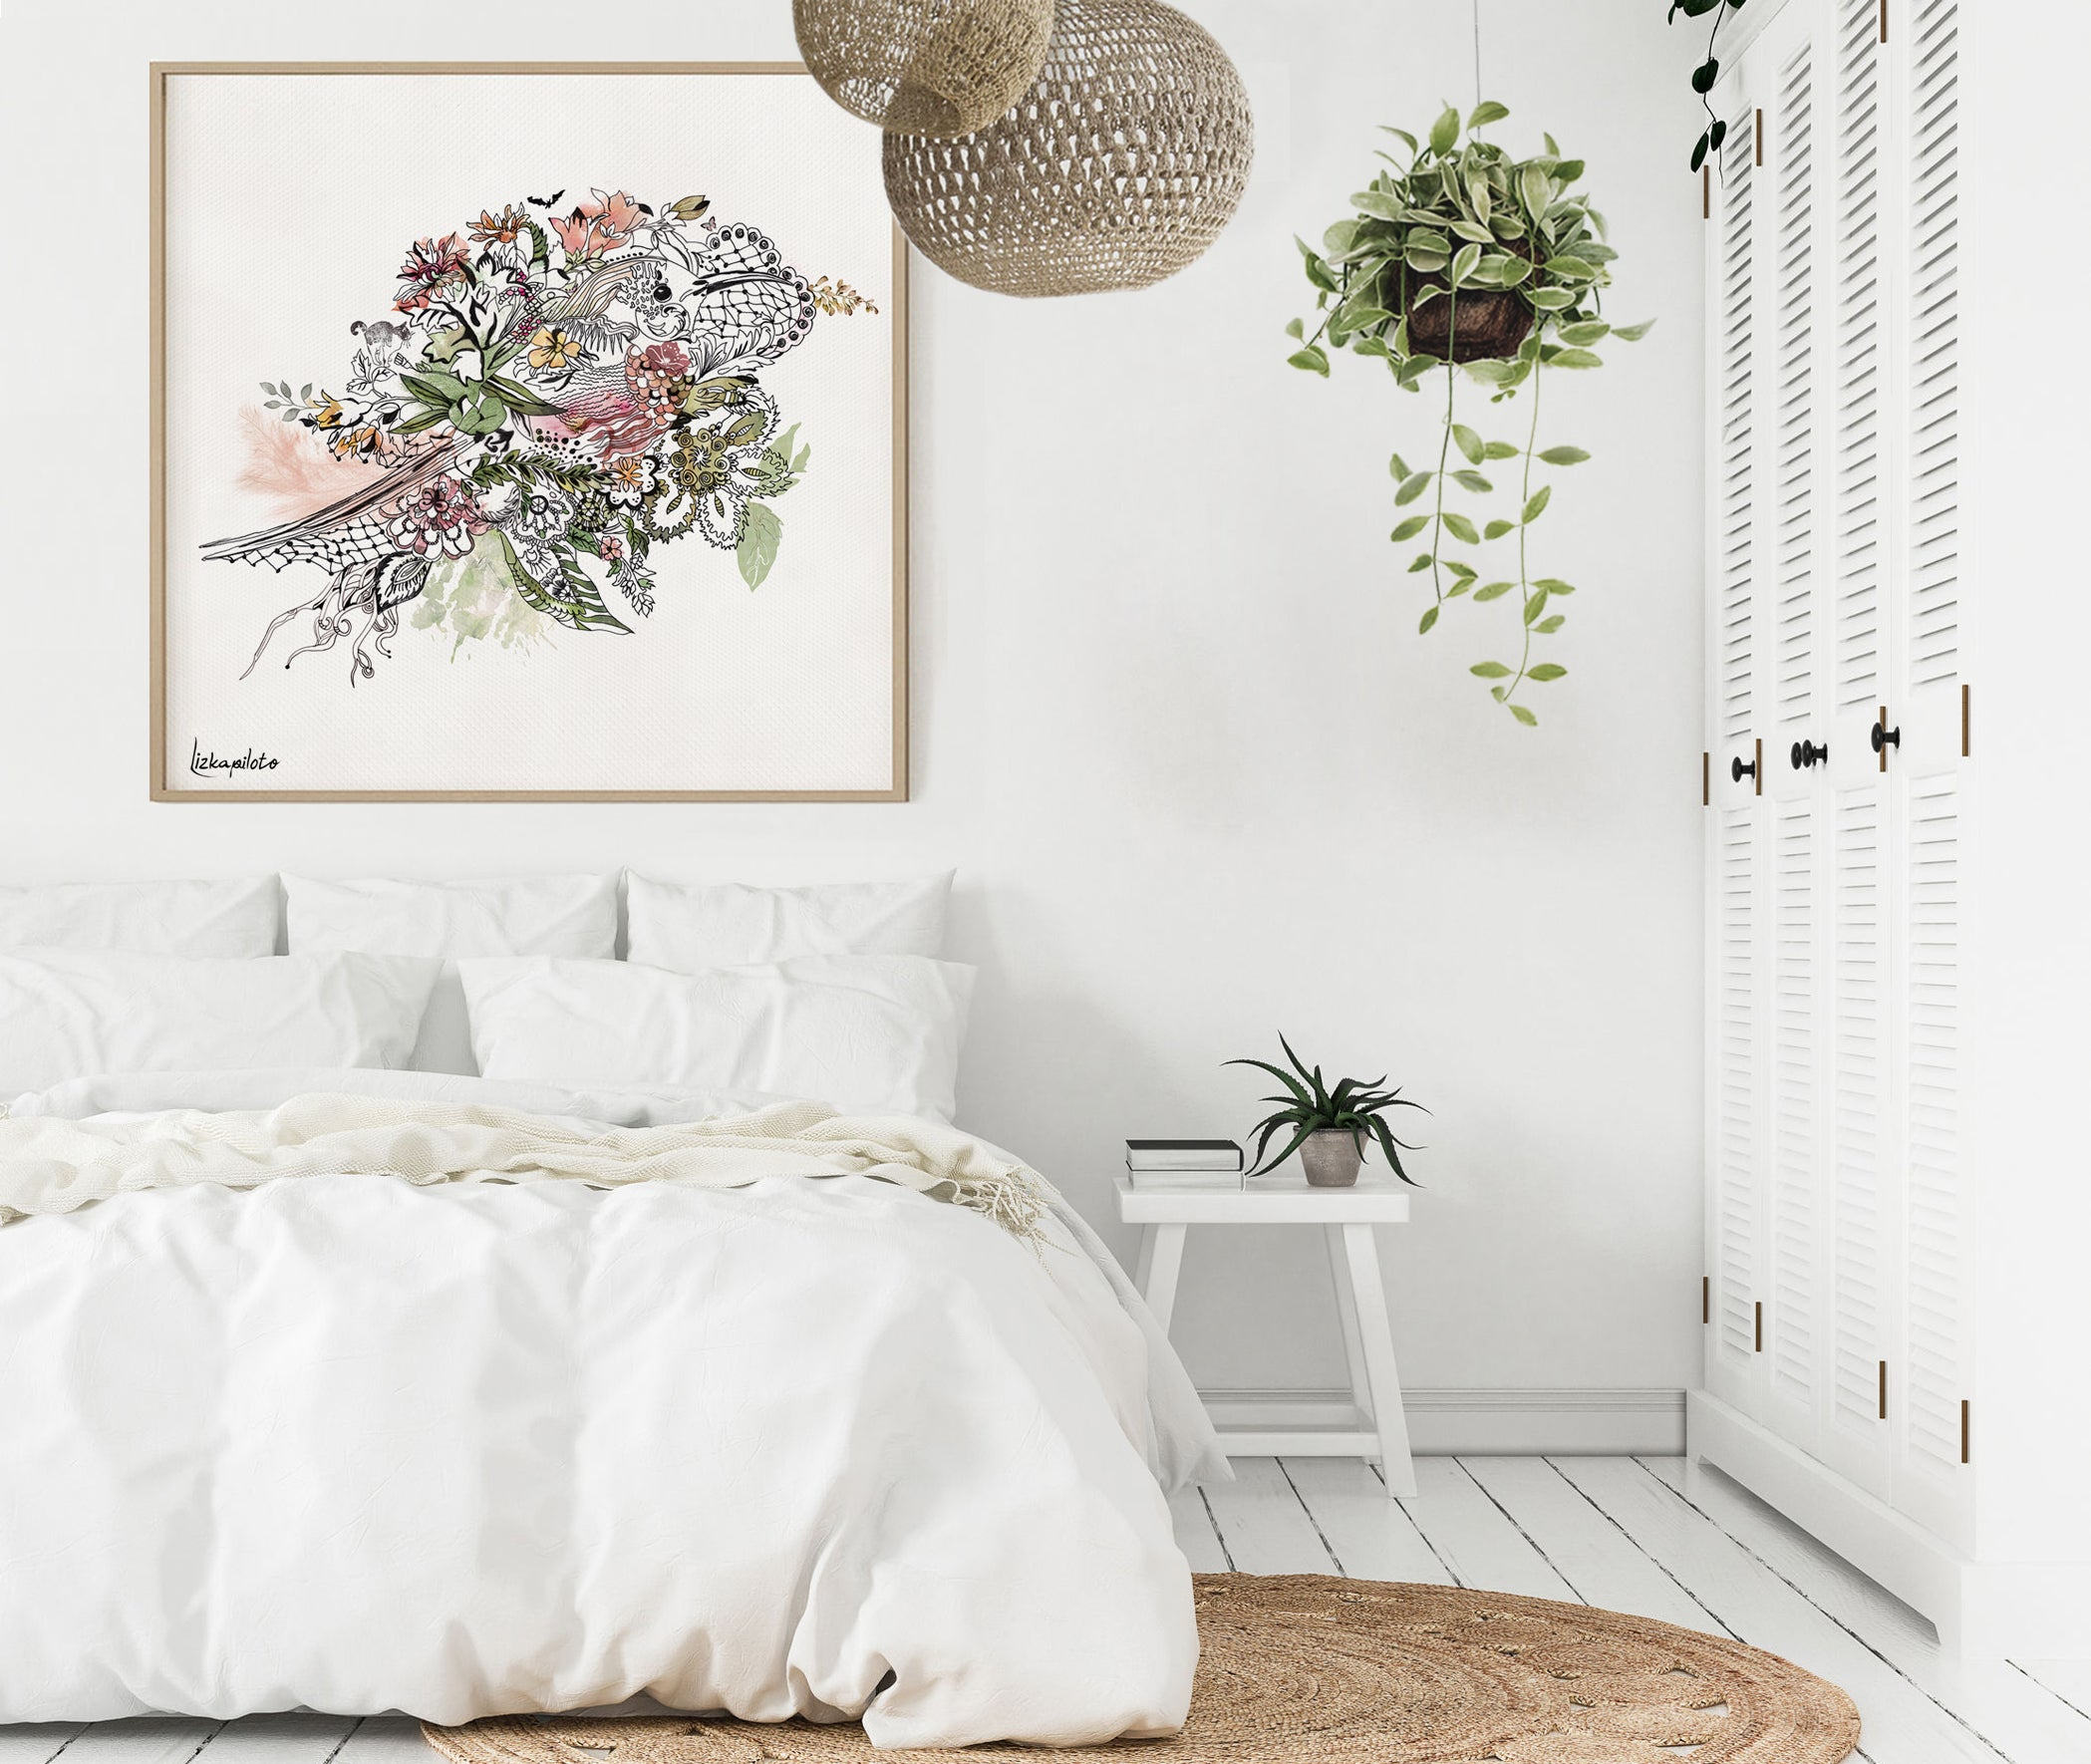 bird watercolor painting with flowers, framed and hanged in a white bedroom